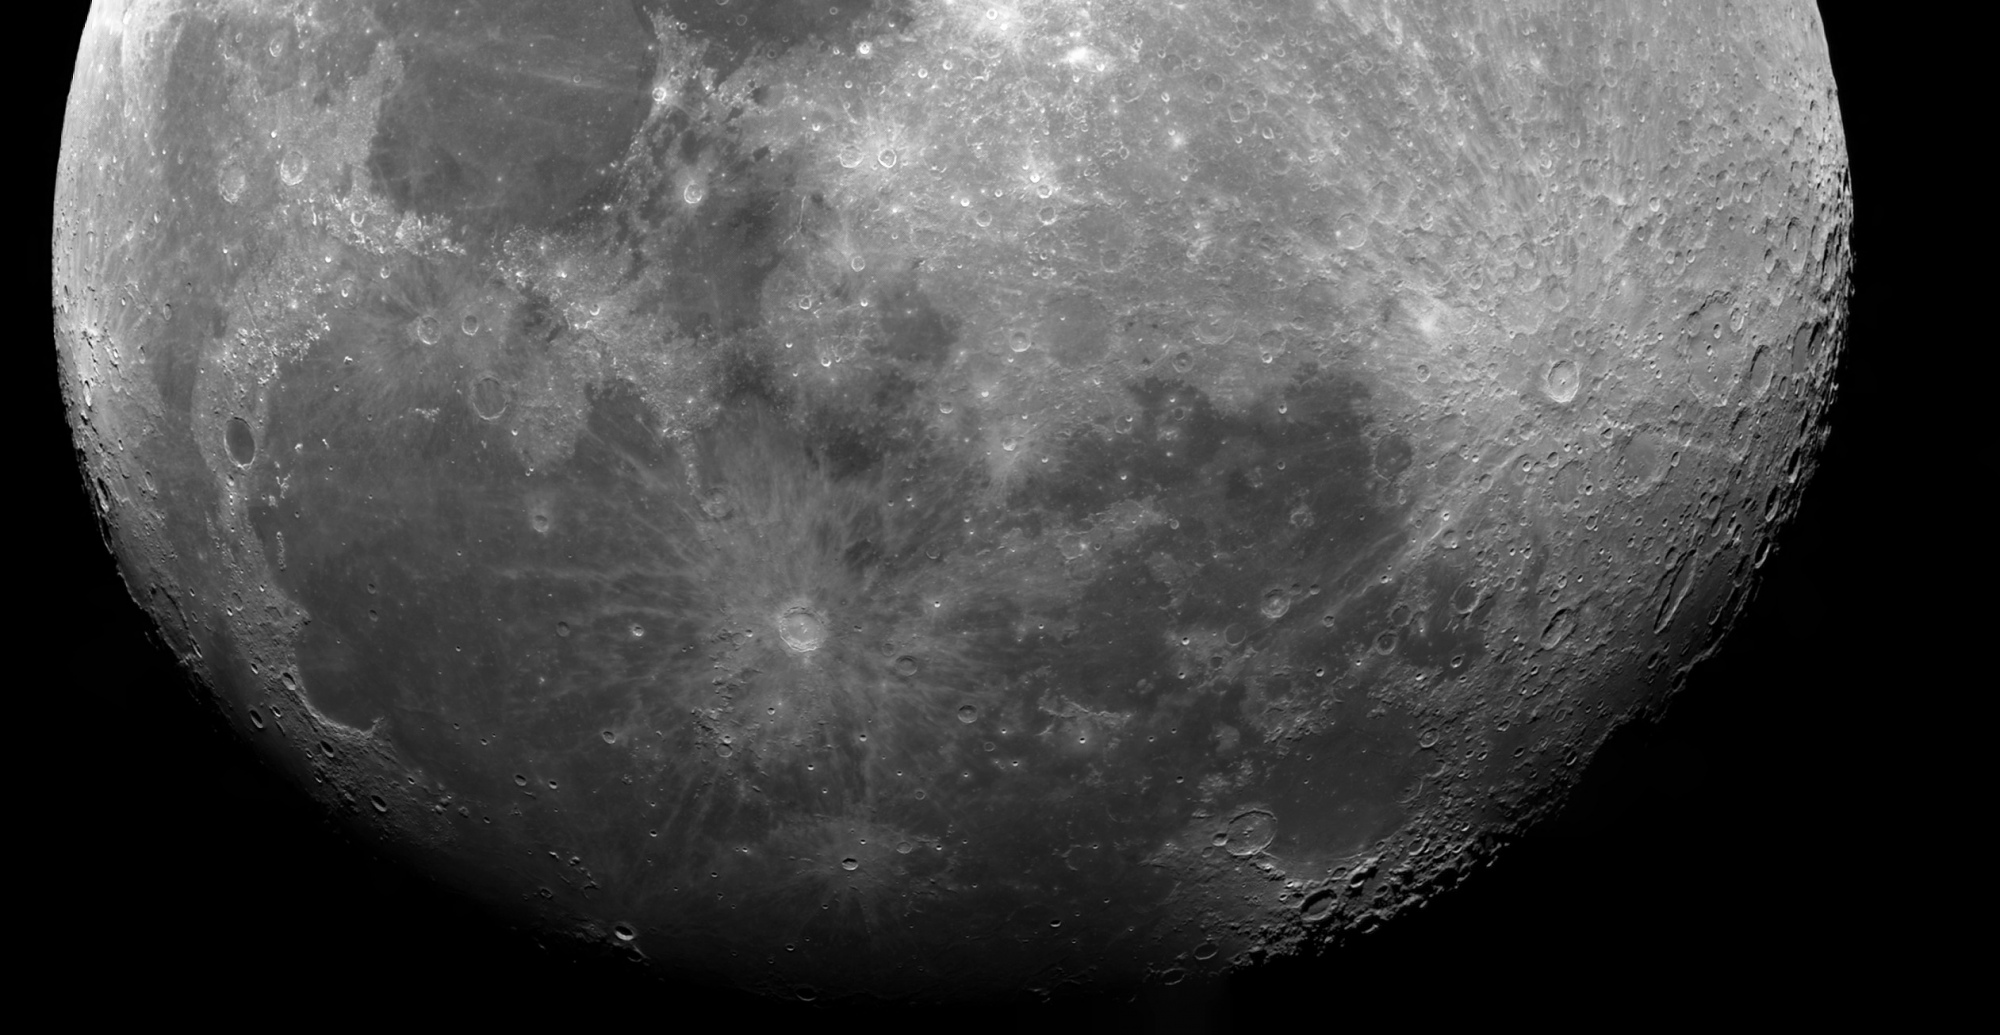 [Group 1]-Moon_214319_wavelet_DxO_Moon_214734_wavelet_DxO-4 images_DxO.jpg